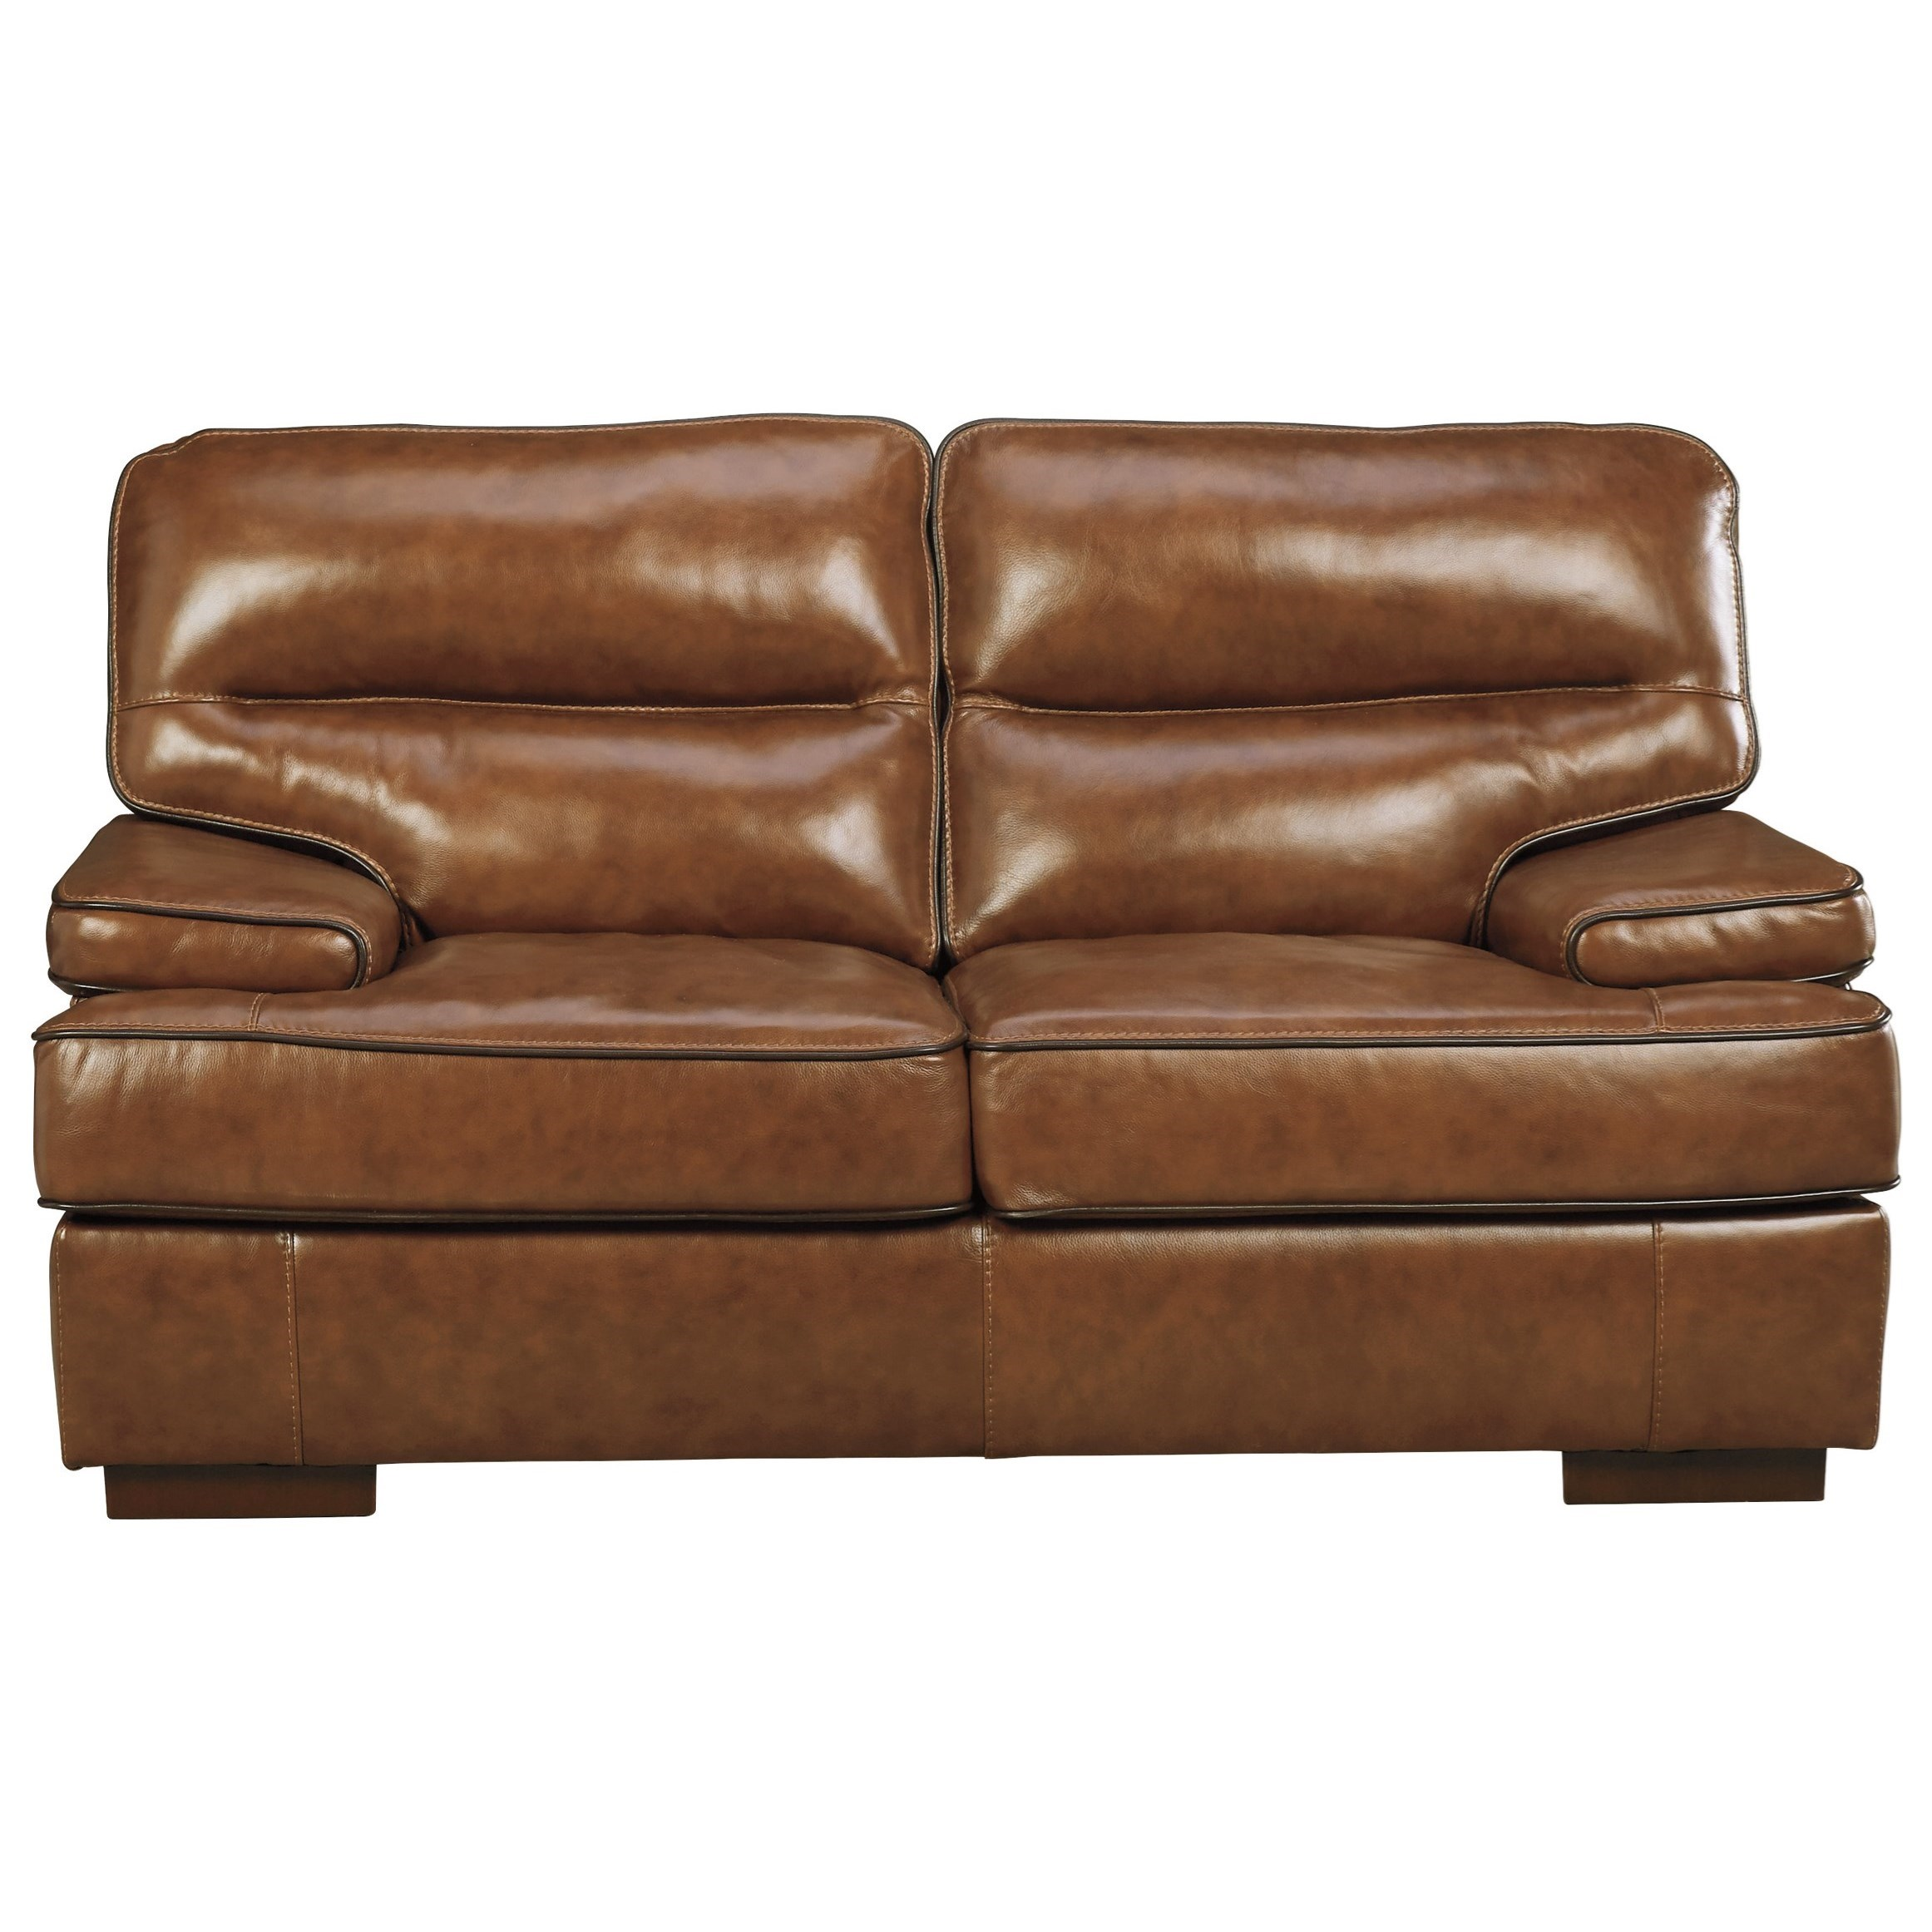 Ashley Signature Design Palner 7850135 Contemporary Leather Match Loveseat Dunk Bright